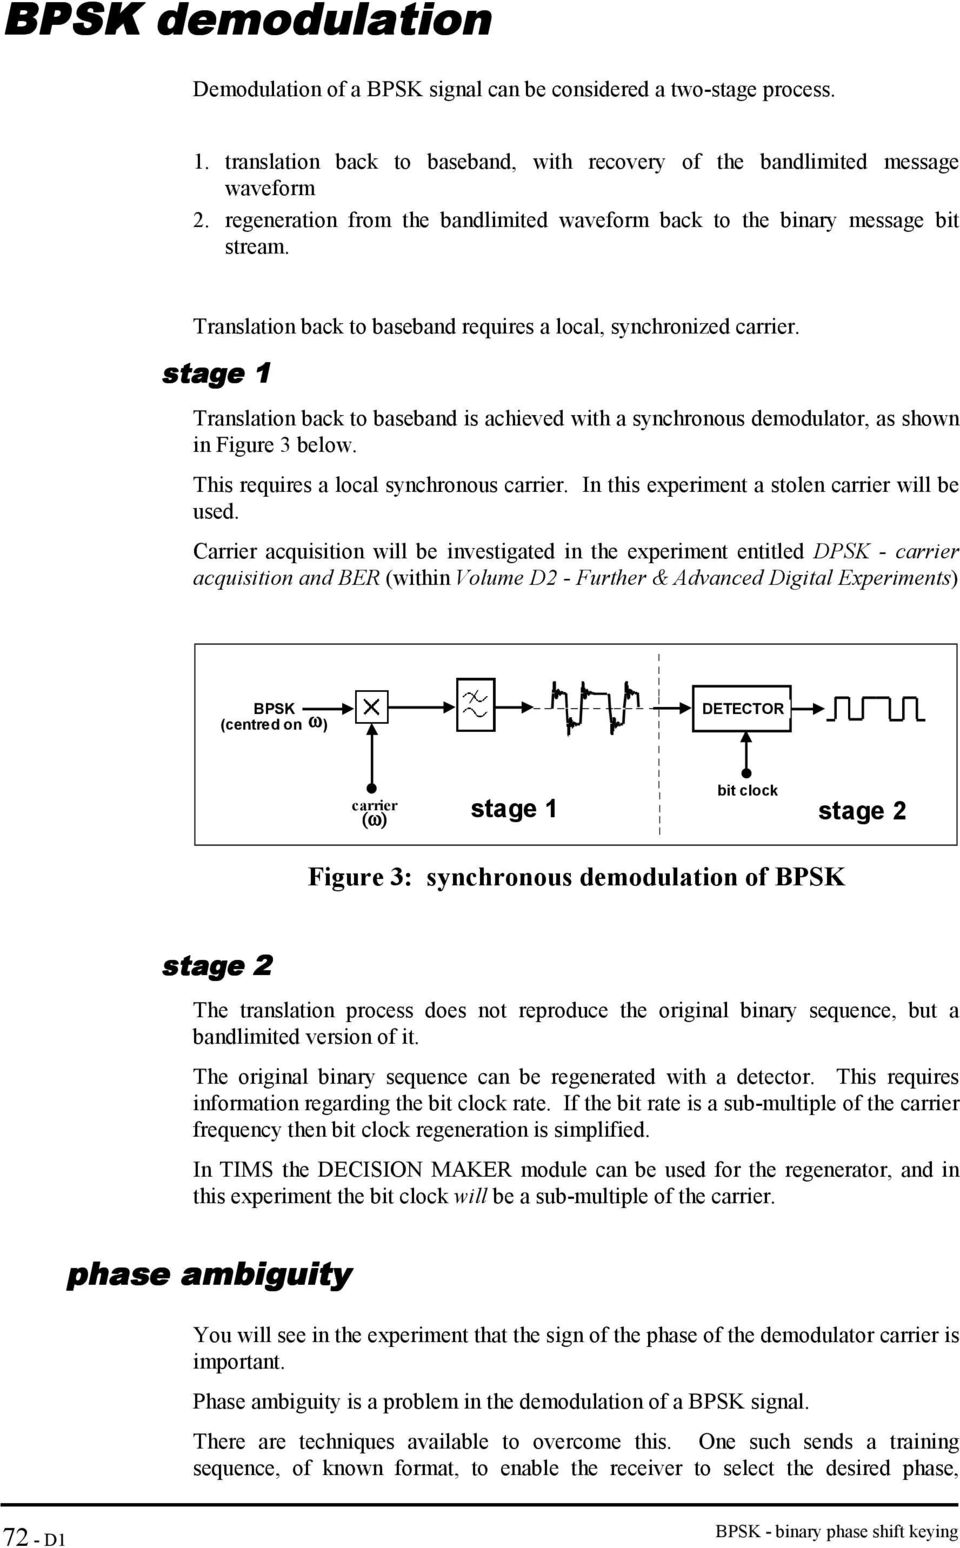 BPSK - BINARY PHASE SHIFT KEYING - PDF